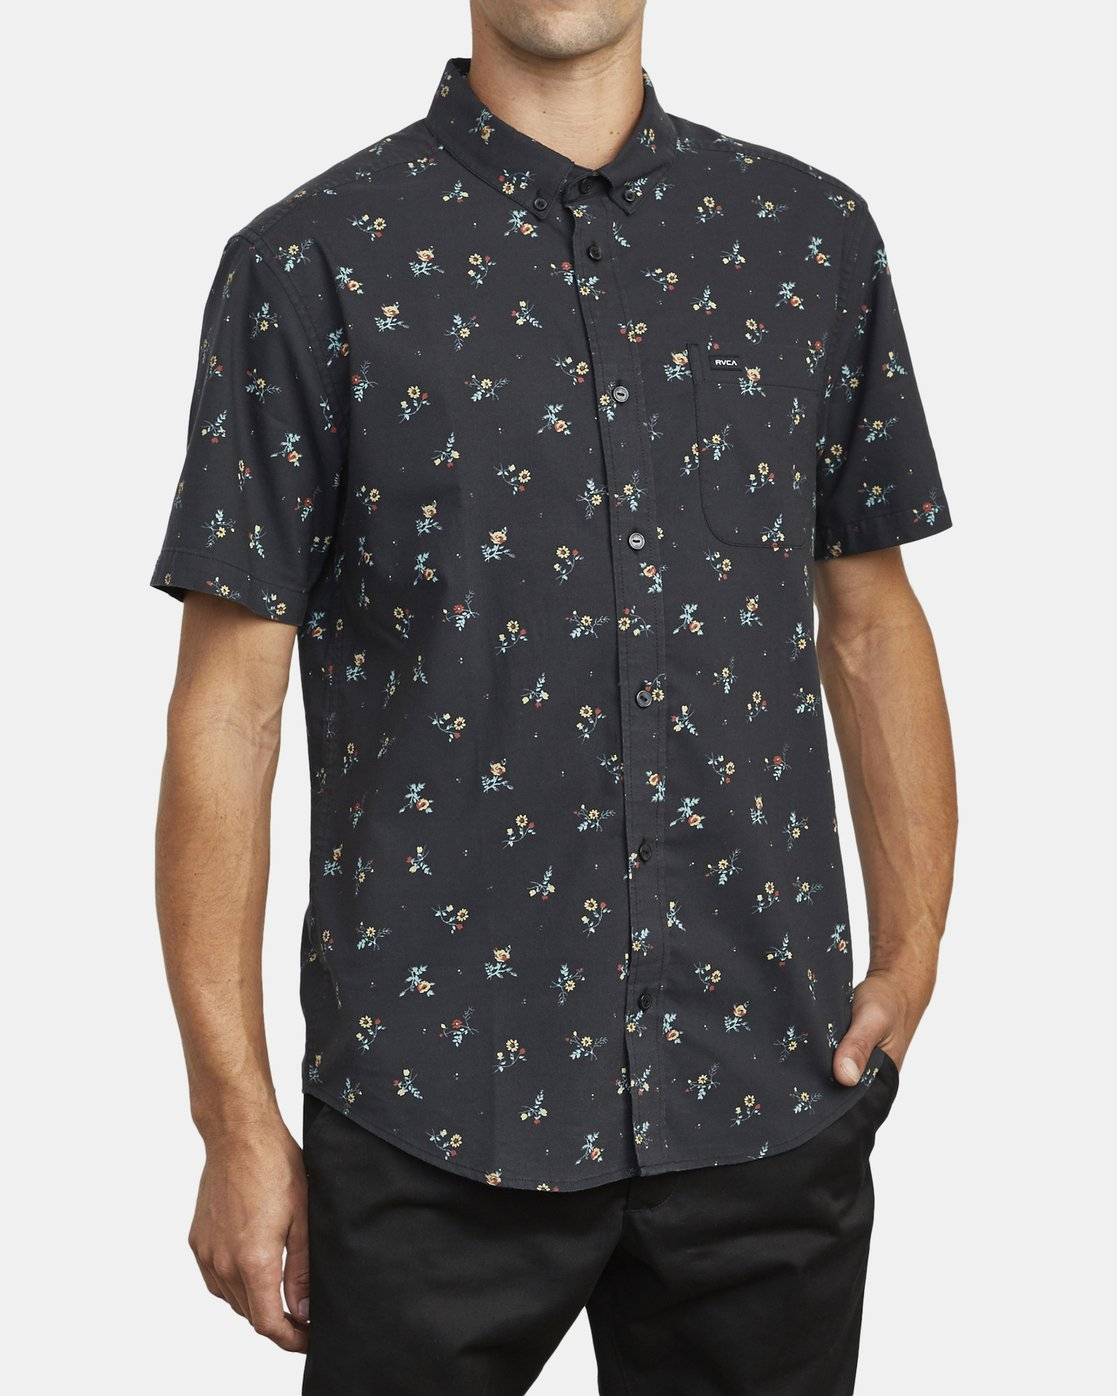 5 THAT'LL DO PRINT BUTTON-UP SHIRT Black M502VRTP RVCA